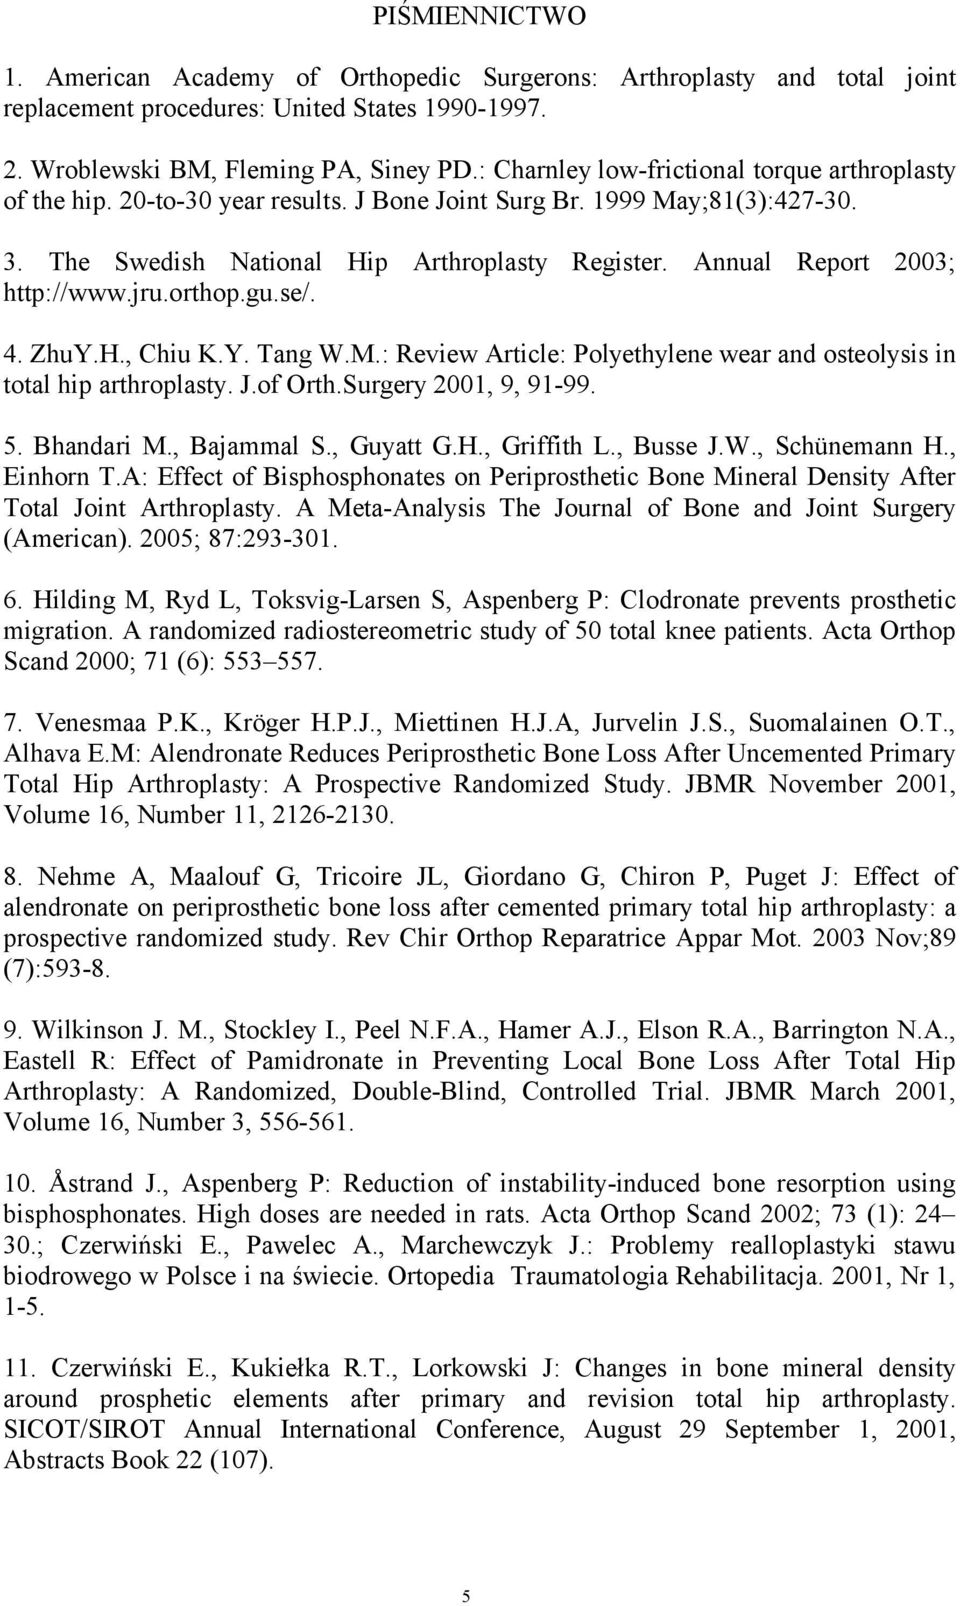 Annual Report 2003; http://www.jru.orthop.gu.se/. 4. ZhuY.H., Chiu K.Y. Tang W.M.: Review Article: Polyethylene wear and osteolysis in total hip arthroplasty. J.of Orth.Surgery 2001, 9, 91-99. 5.